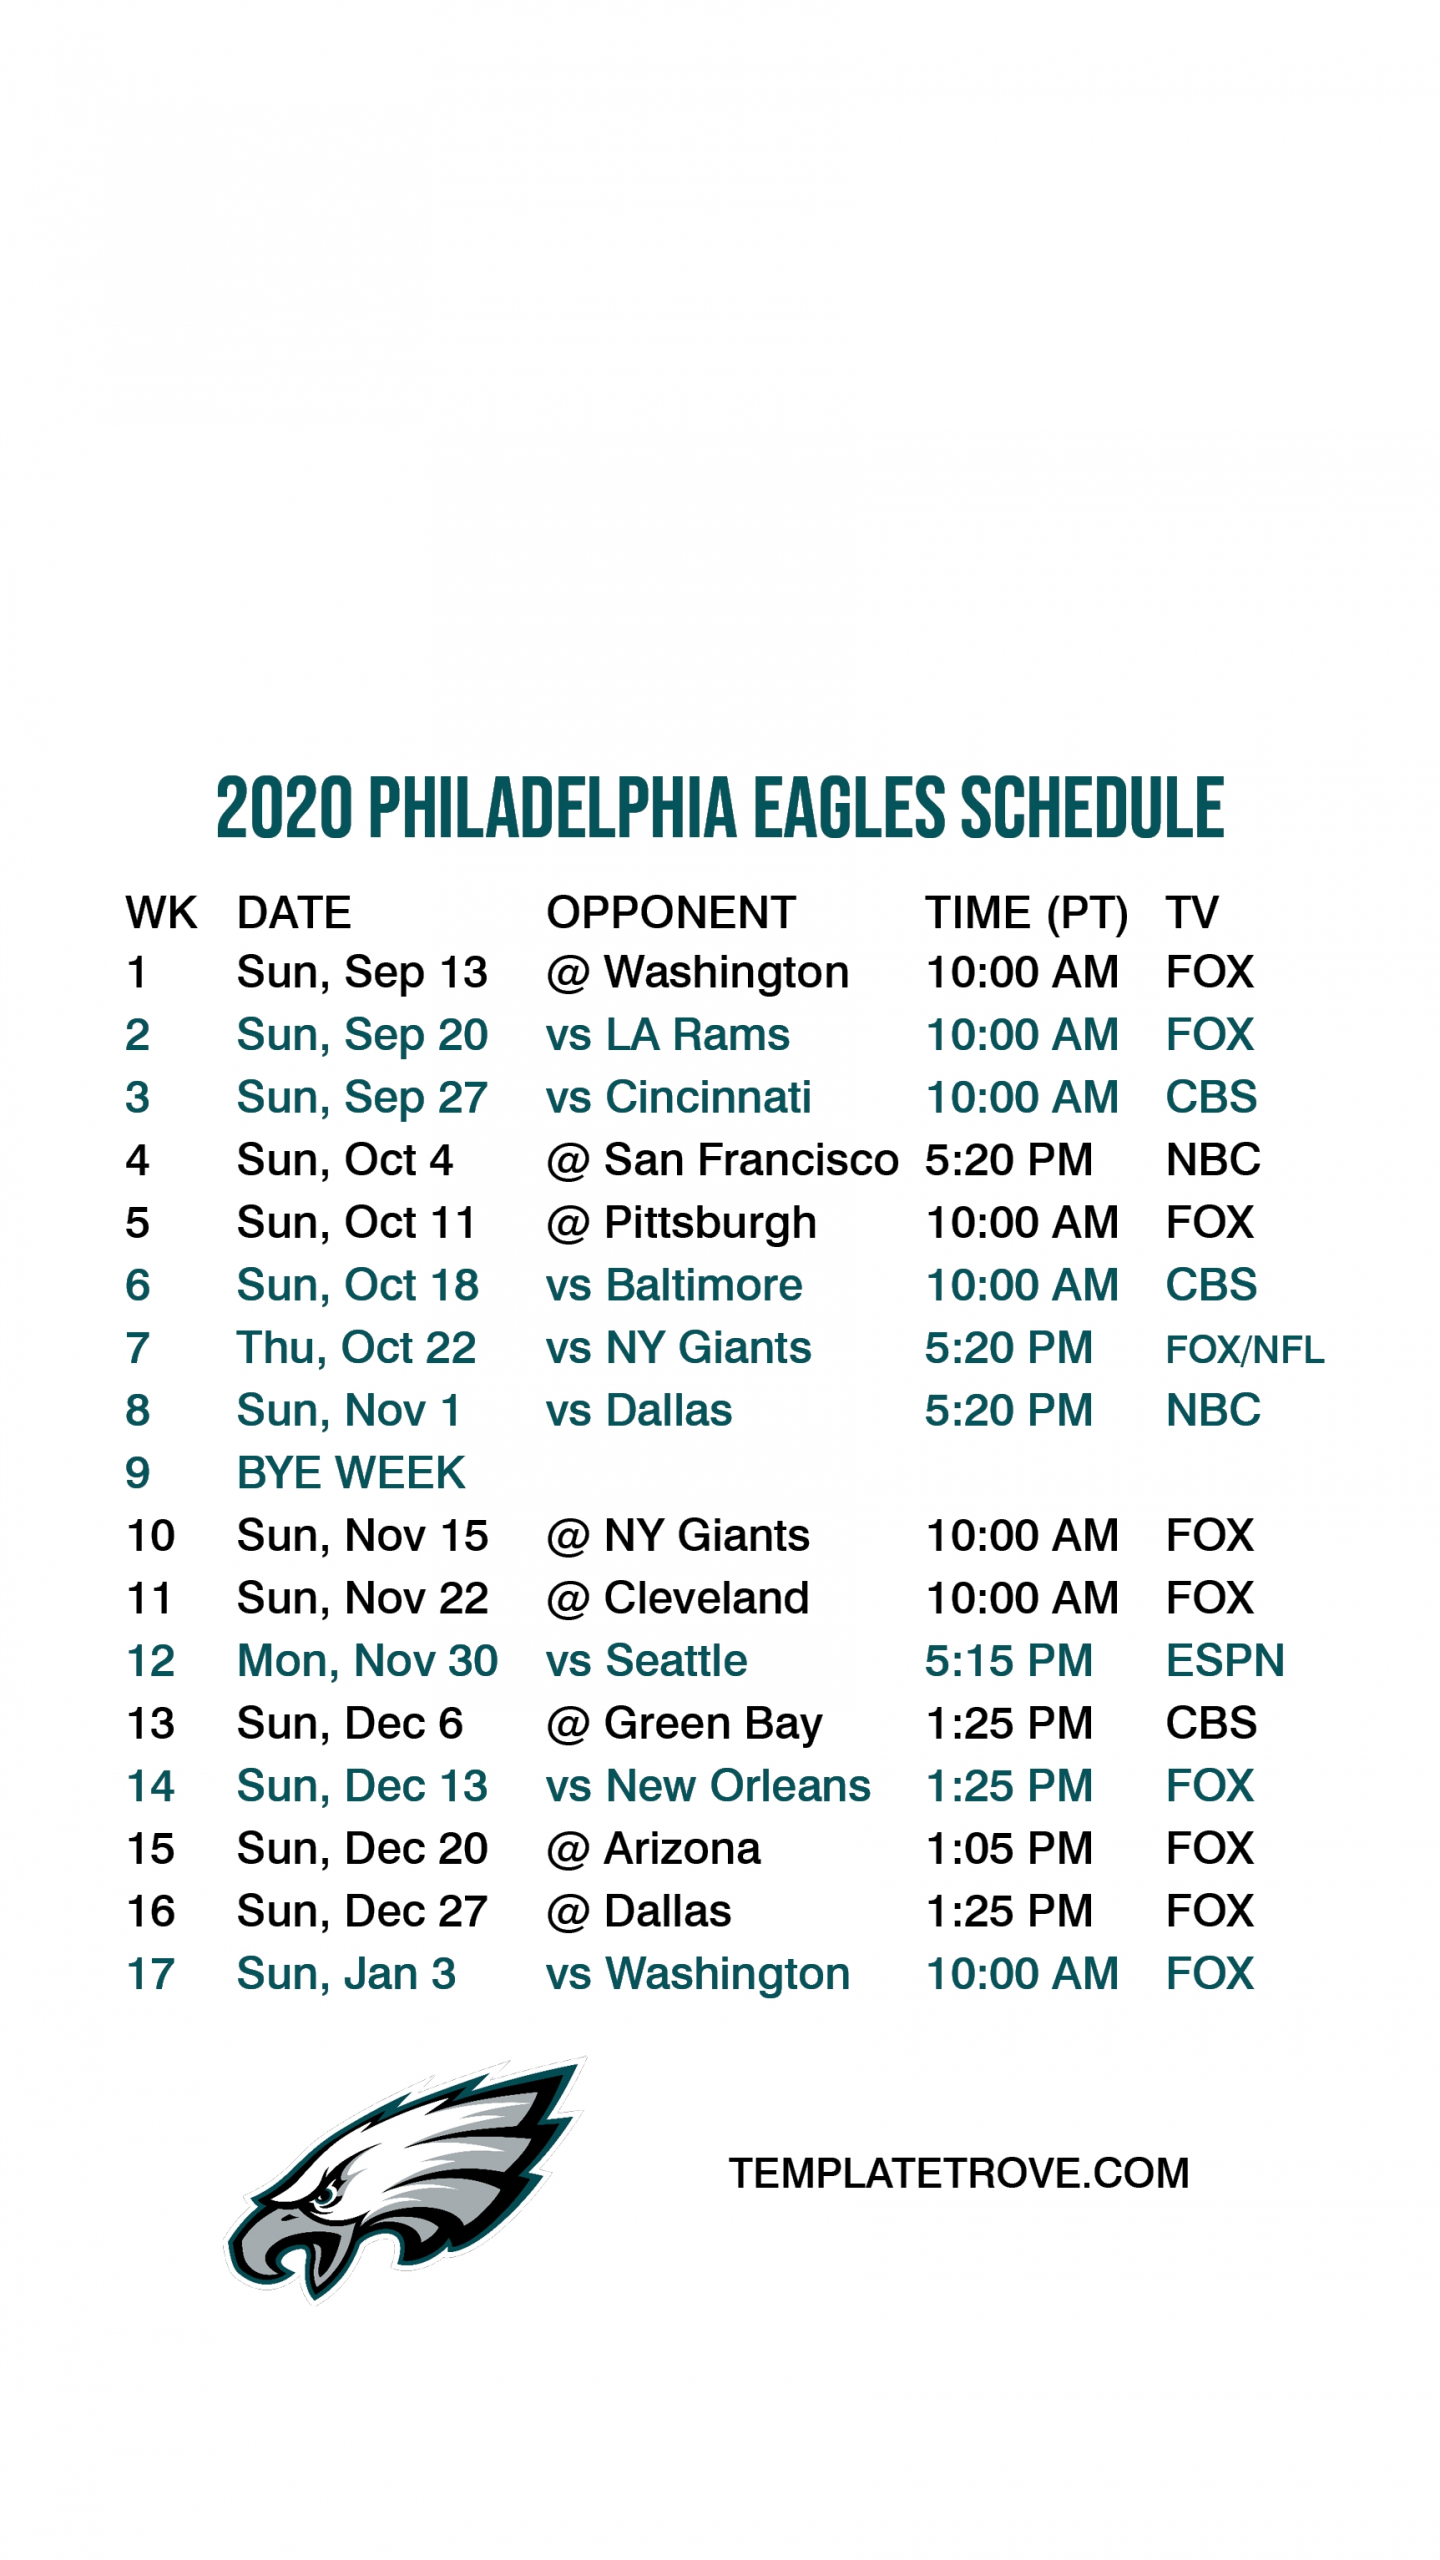 2020-2021 Philadelphia Eagles Lock Screen Schedule For Iphone 6-7-8 Plus-Printable Nfl Schedule For 2021 2021